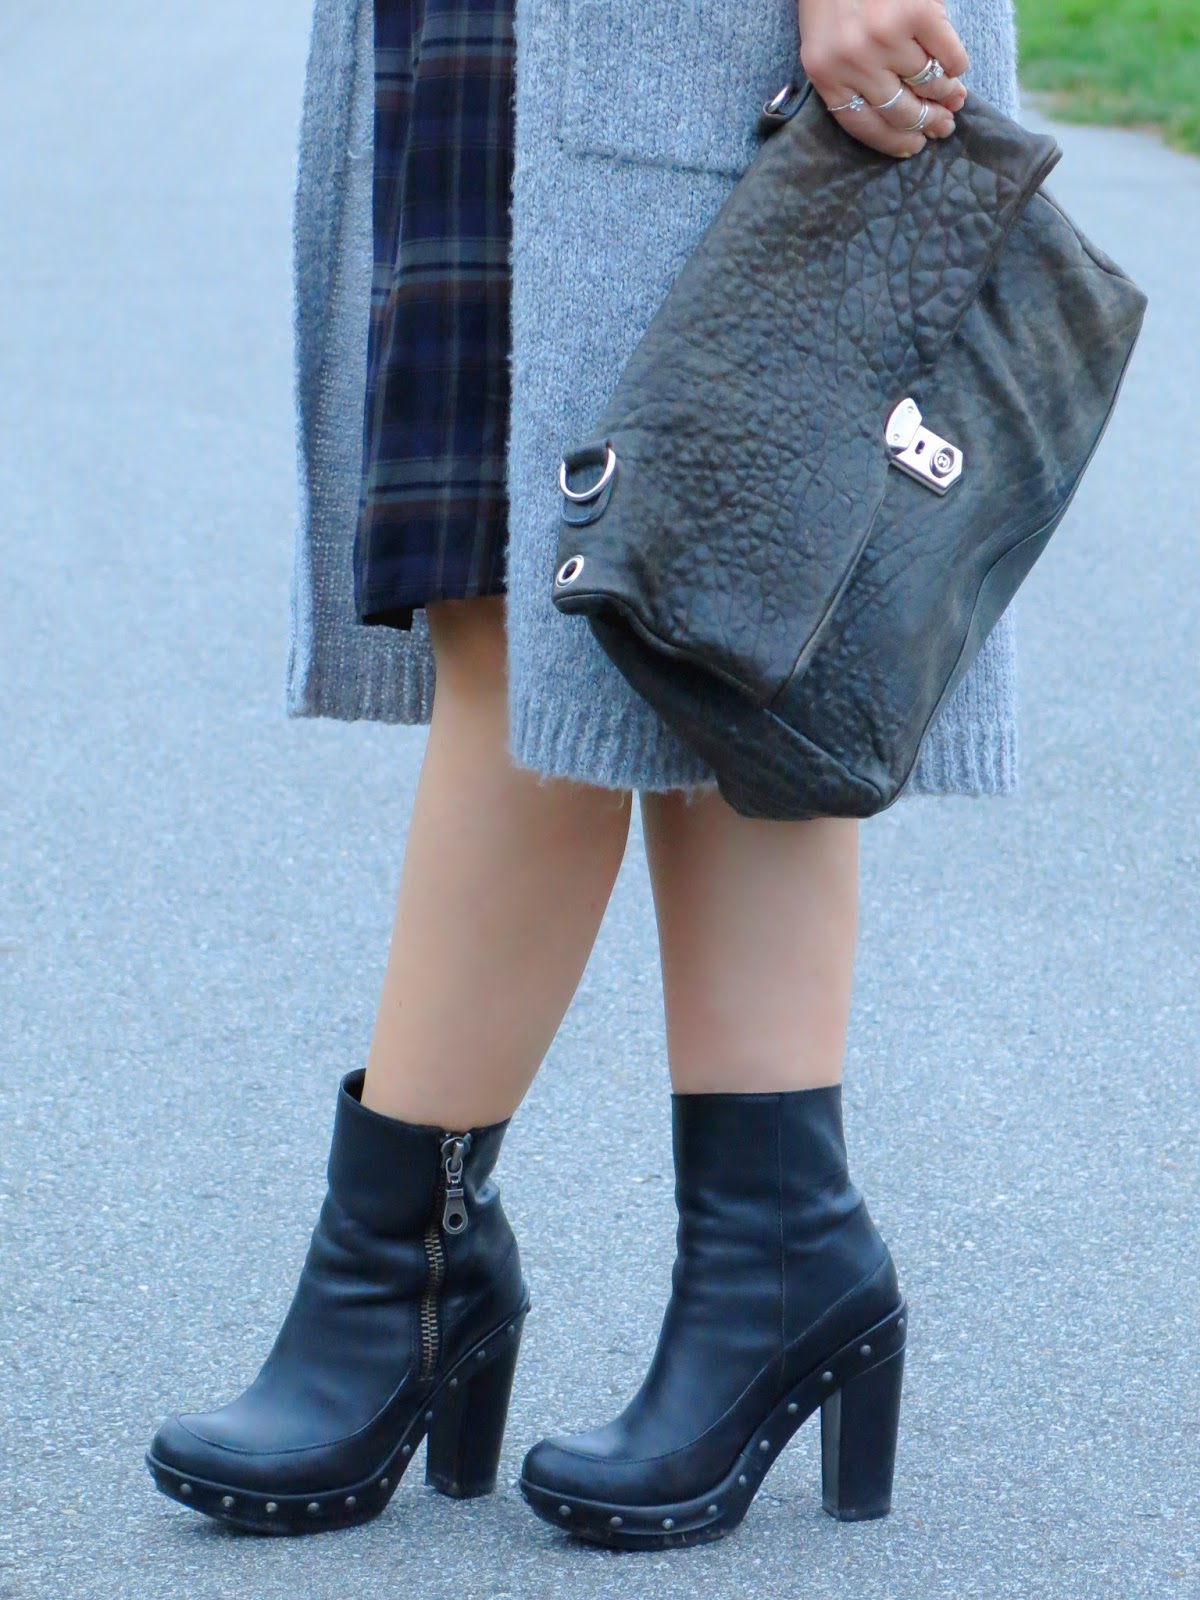 plaid shirtdress with a long cardigan, chunky booties, and pebble-textured satchel